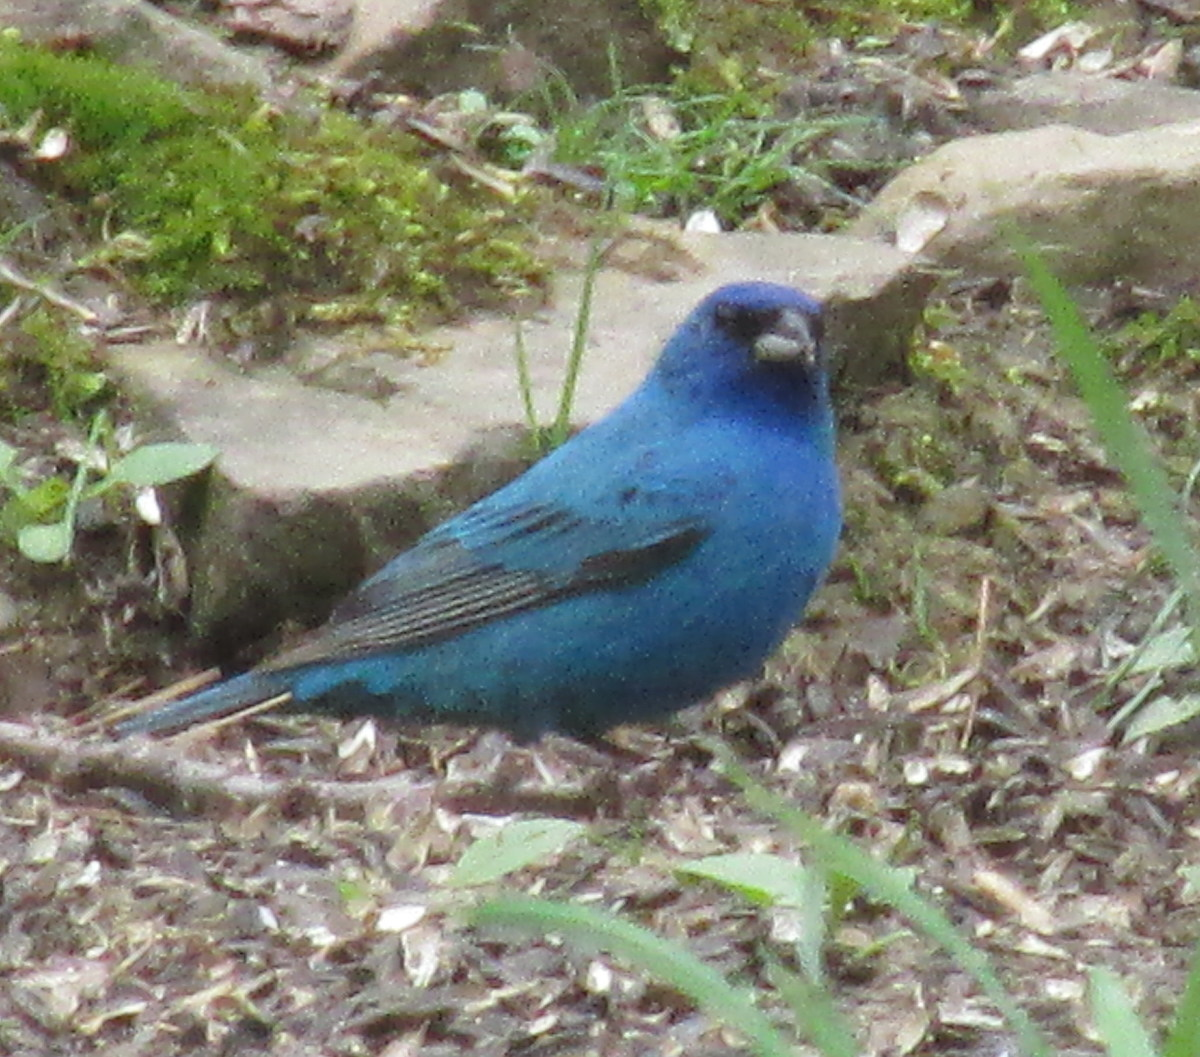 Male Indigo Bunting foraging beneath bird feeders.